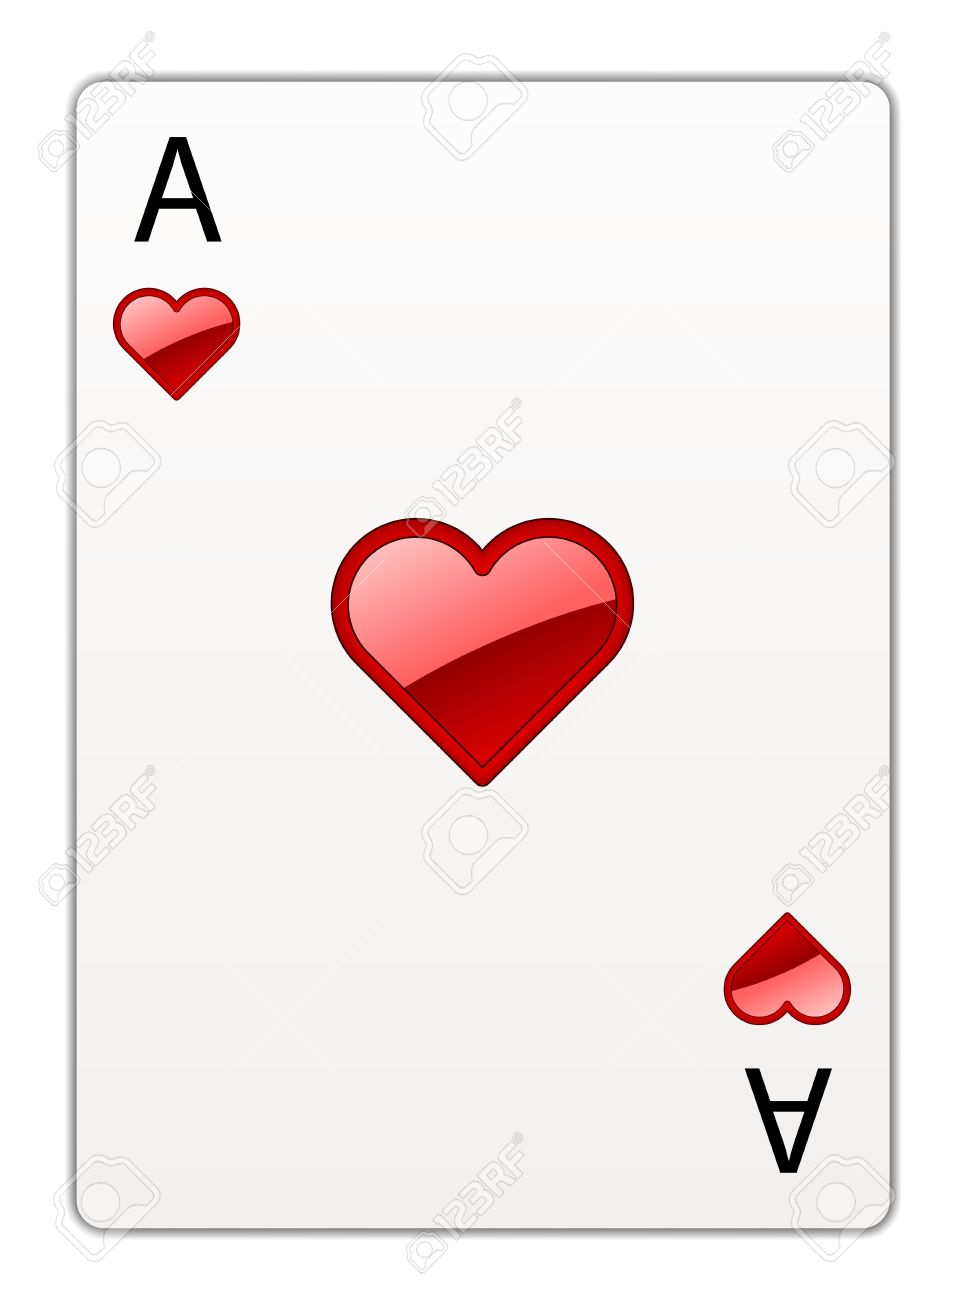 975x1300 Ace Of Hearts Banner Black And White Download